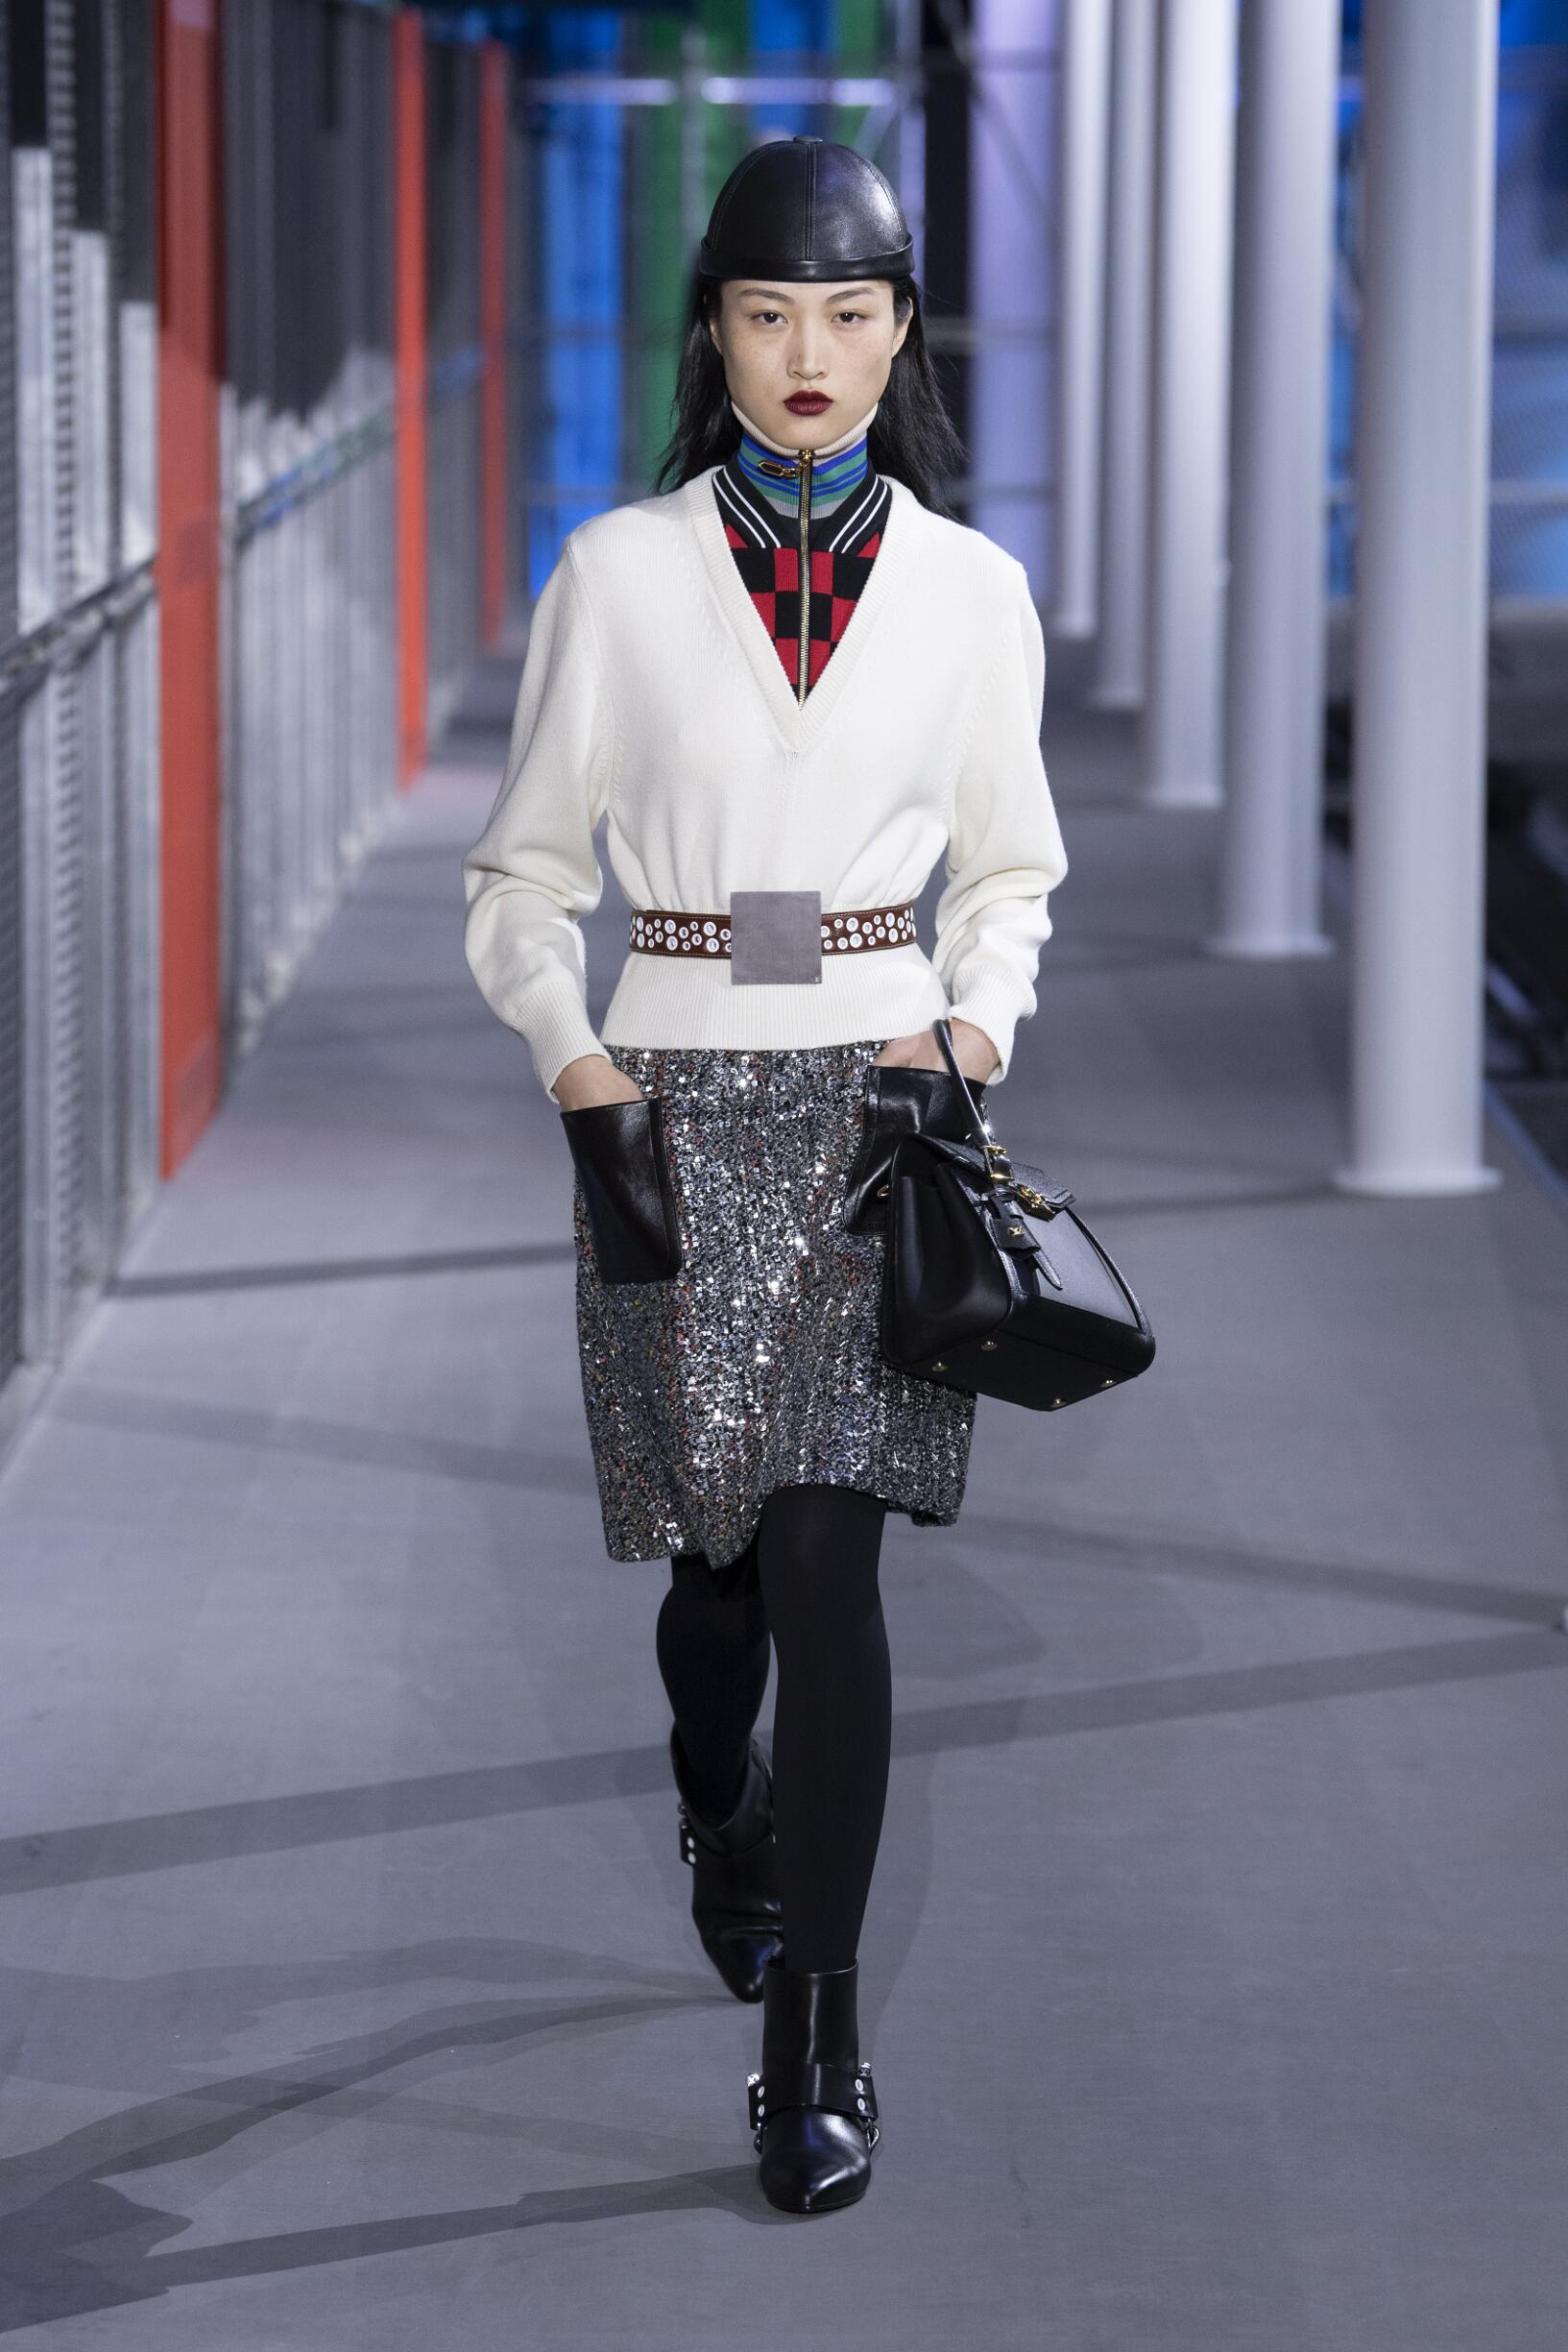 fc7f3a46 LOUIS VUITTON FALL WINTER 2019 WOMEN'S COLLECTION | The Skinny Beep